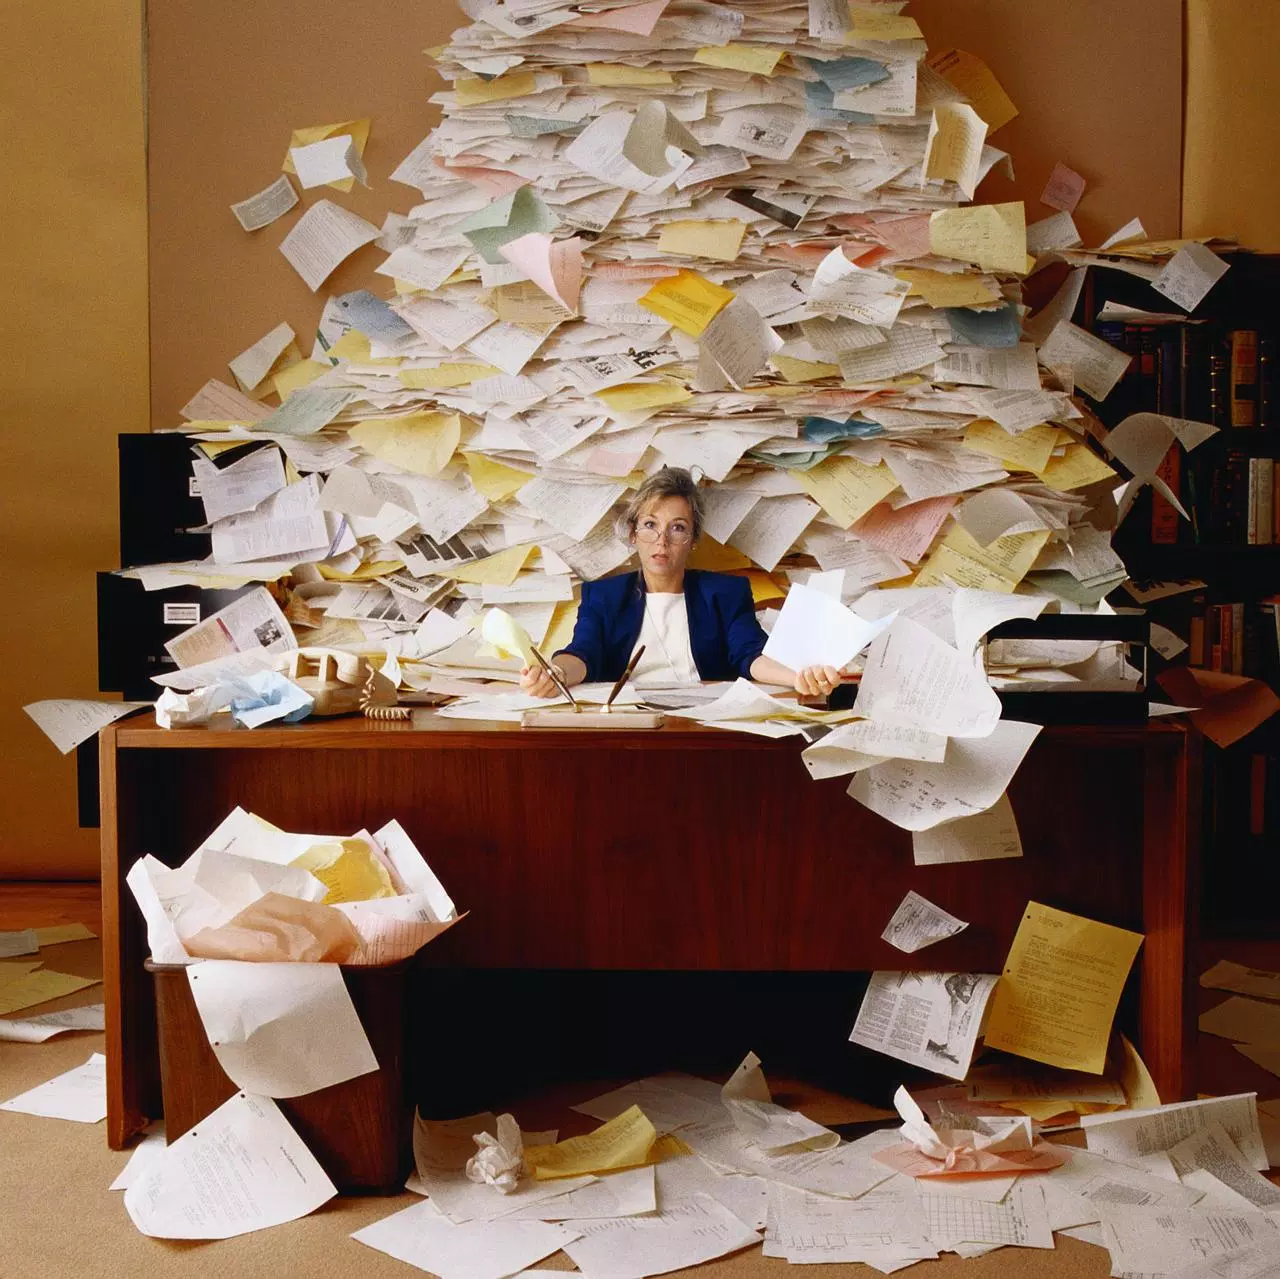 Woman sat at desk surrounded by flood of paper documents